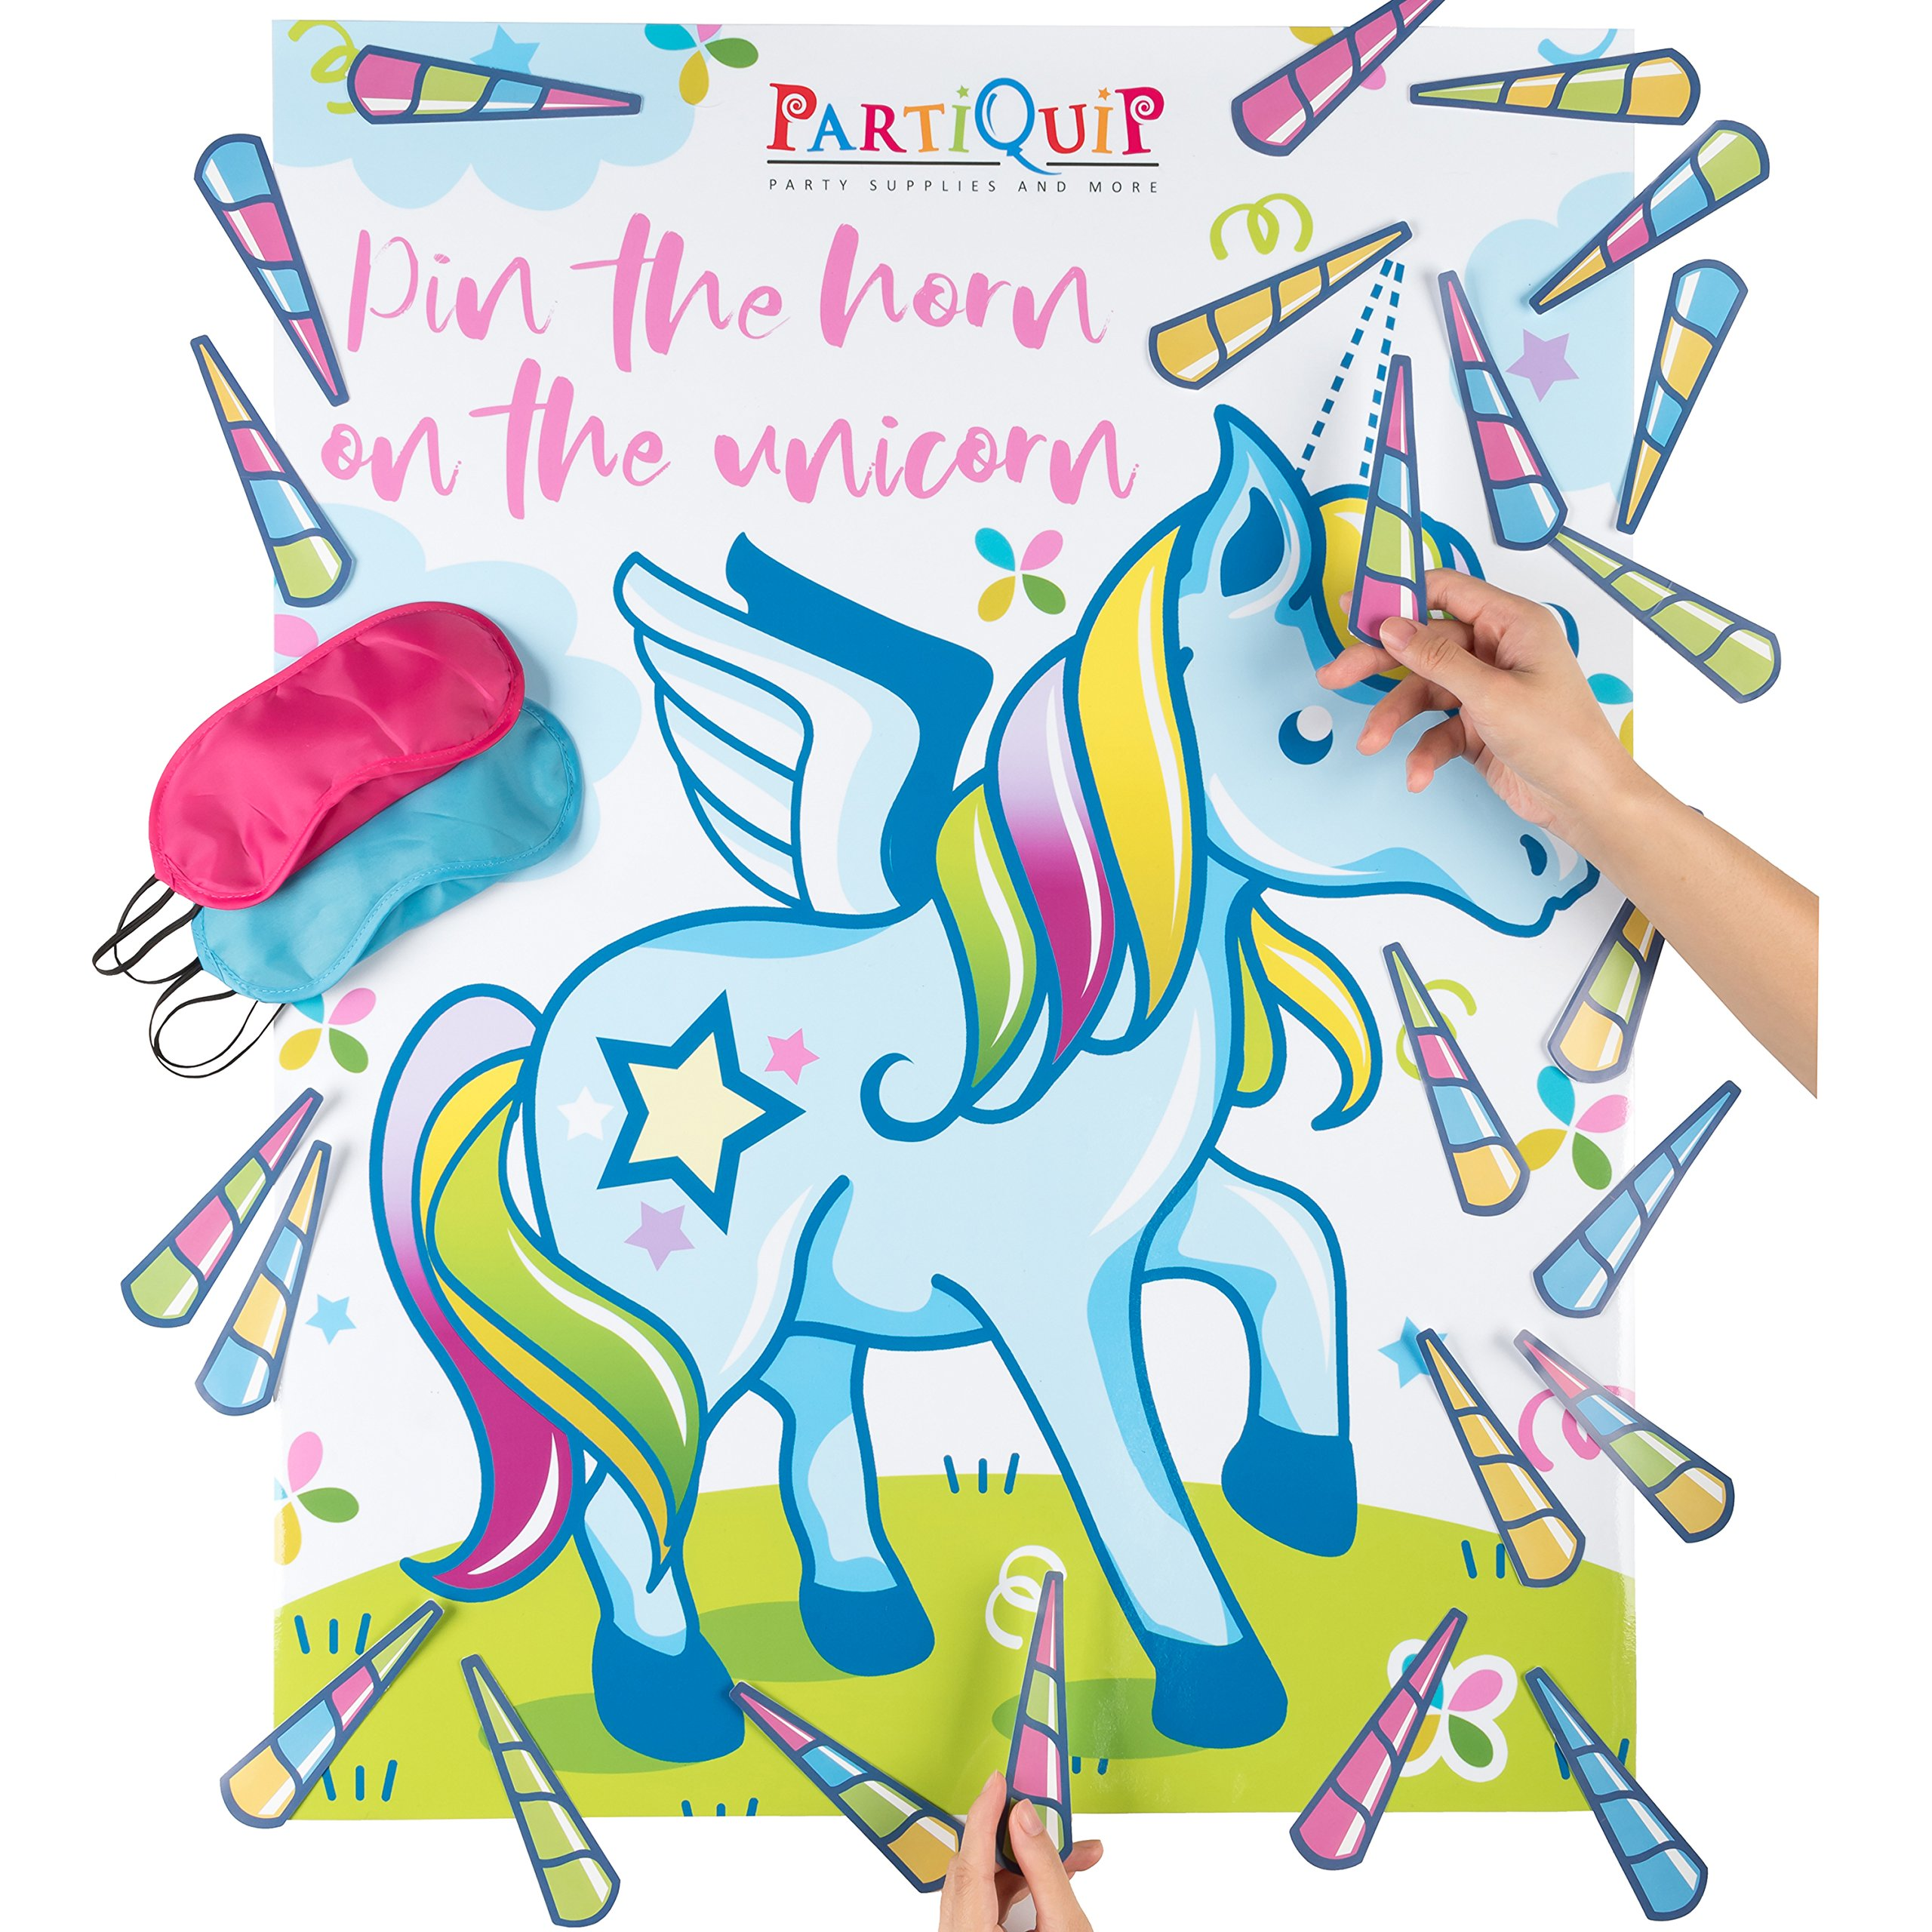 Partiquip Pin The Horn On The Unicorn Birthday Party Supplies - Unicorn Party Supplies for Girls Unicorn Decorations, Unicorn Games, Unicorn Gifts – Unicorns Poster For Kids Room Décor